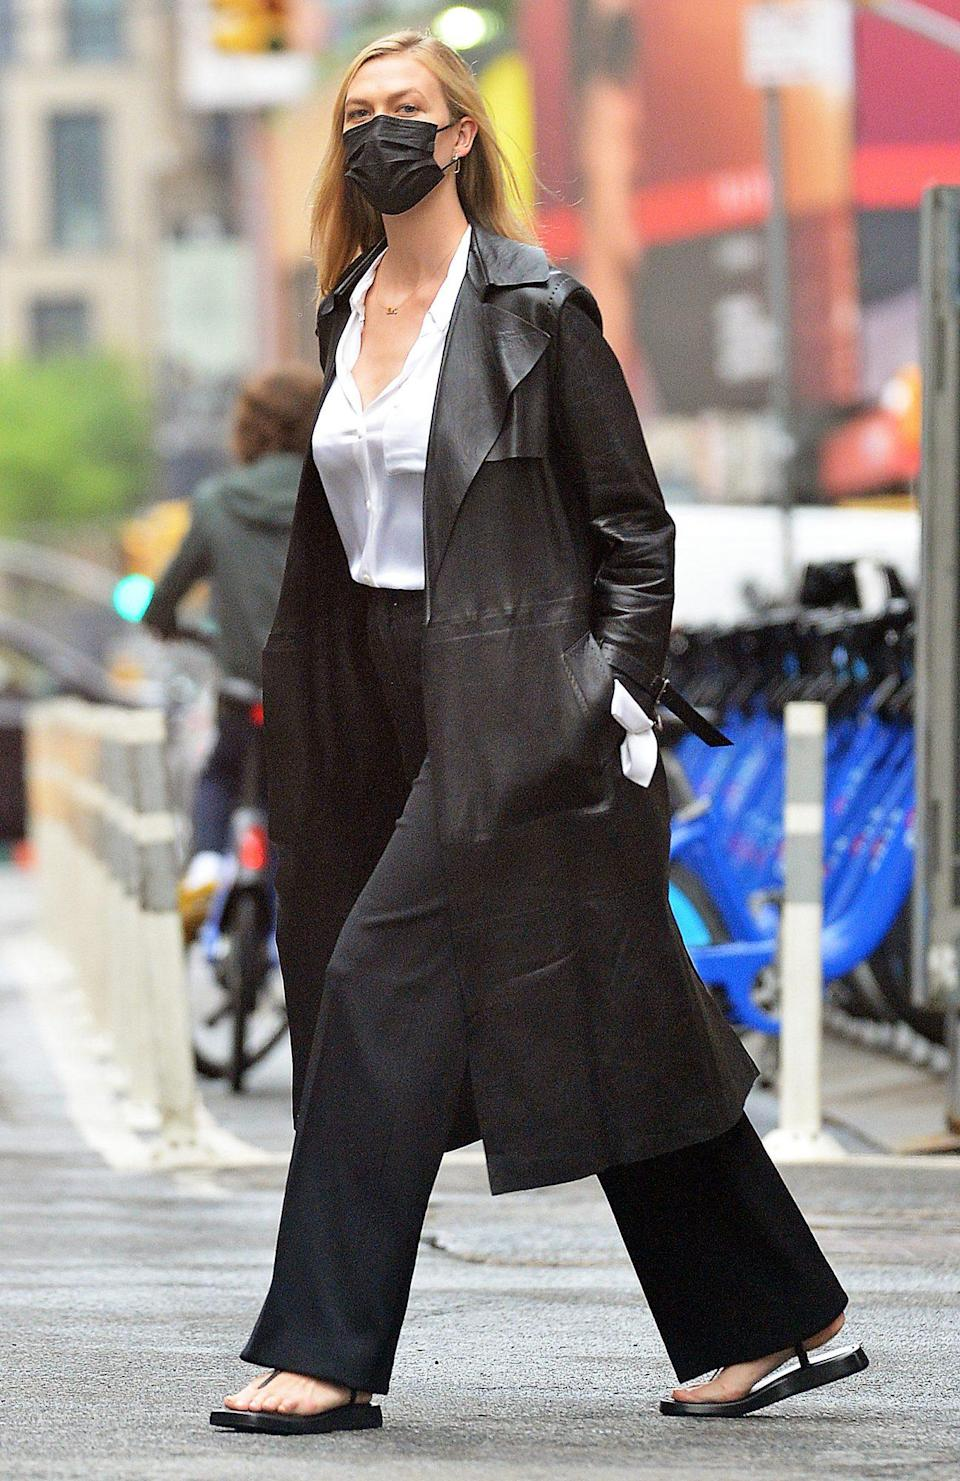 <p>Karlie Kloss looks ready for the boardroom in her black-and-white ensemble in N.Y.C. on Thursday.</p>